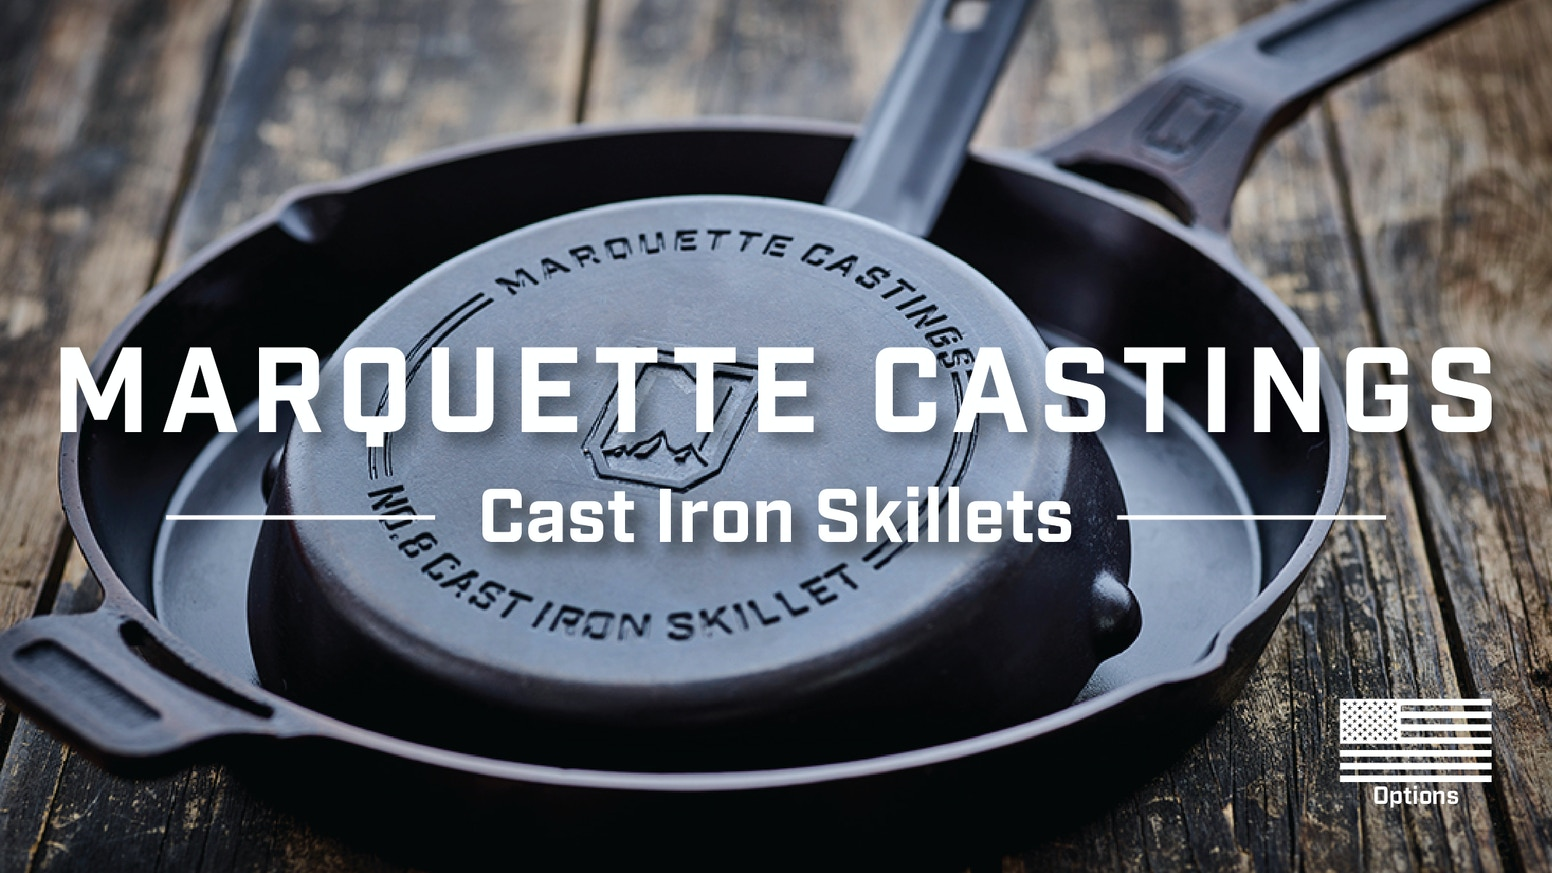 We have set out to create the best skillets ever made by combining a superior casting process with an unparalleled seasoning process.